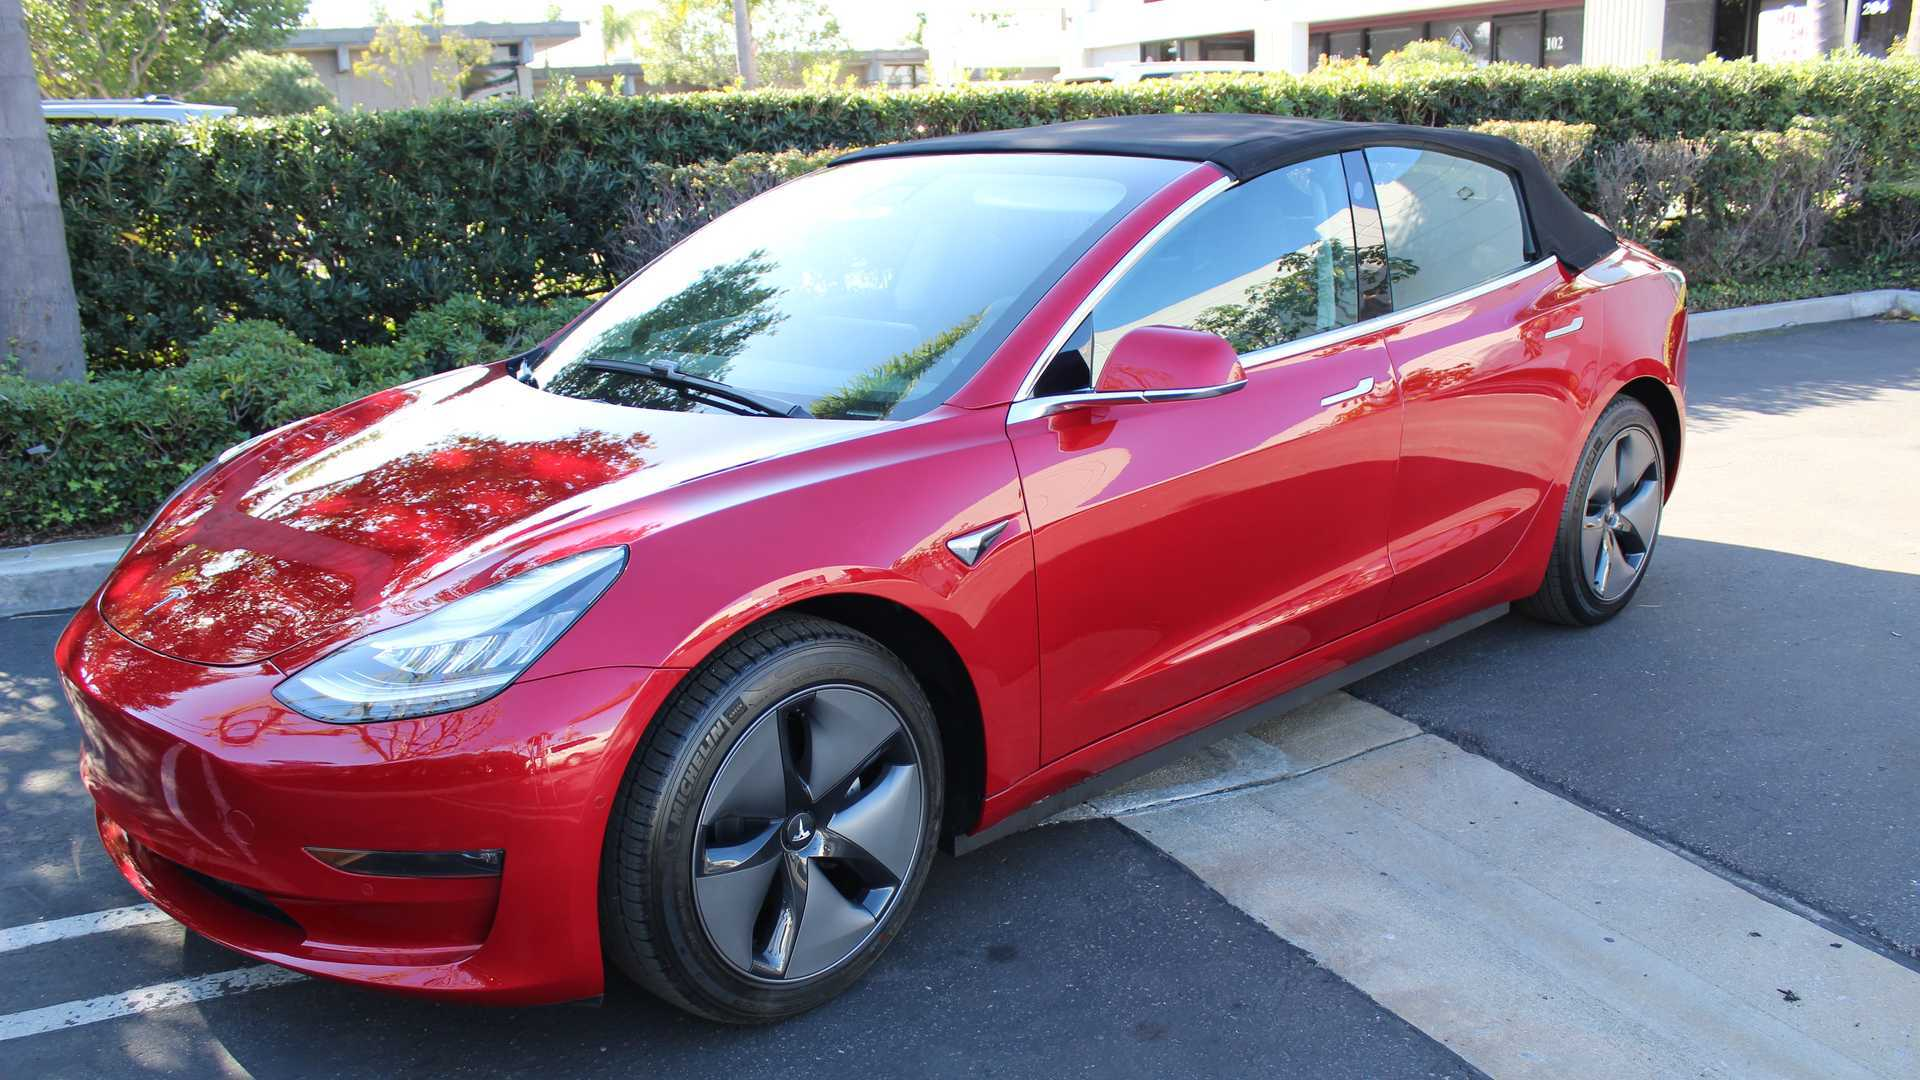 The U.S.-based auto shop Newport Convertible Engineering has unveiled its first open-top conversion of the Tesla Model 3. The scope of work involved is every bit as impressive as the money spent, which could as well buy you another Model 3.